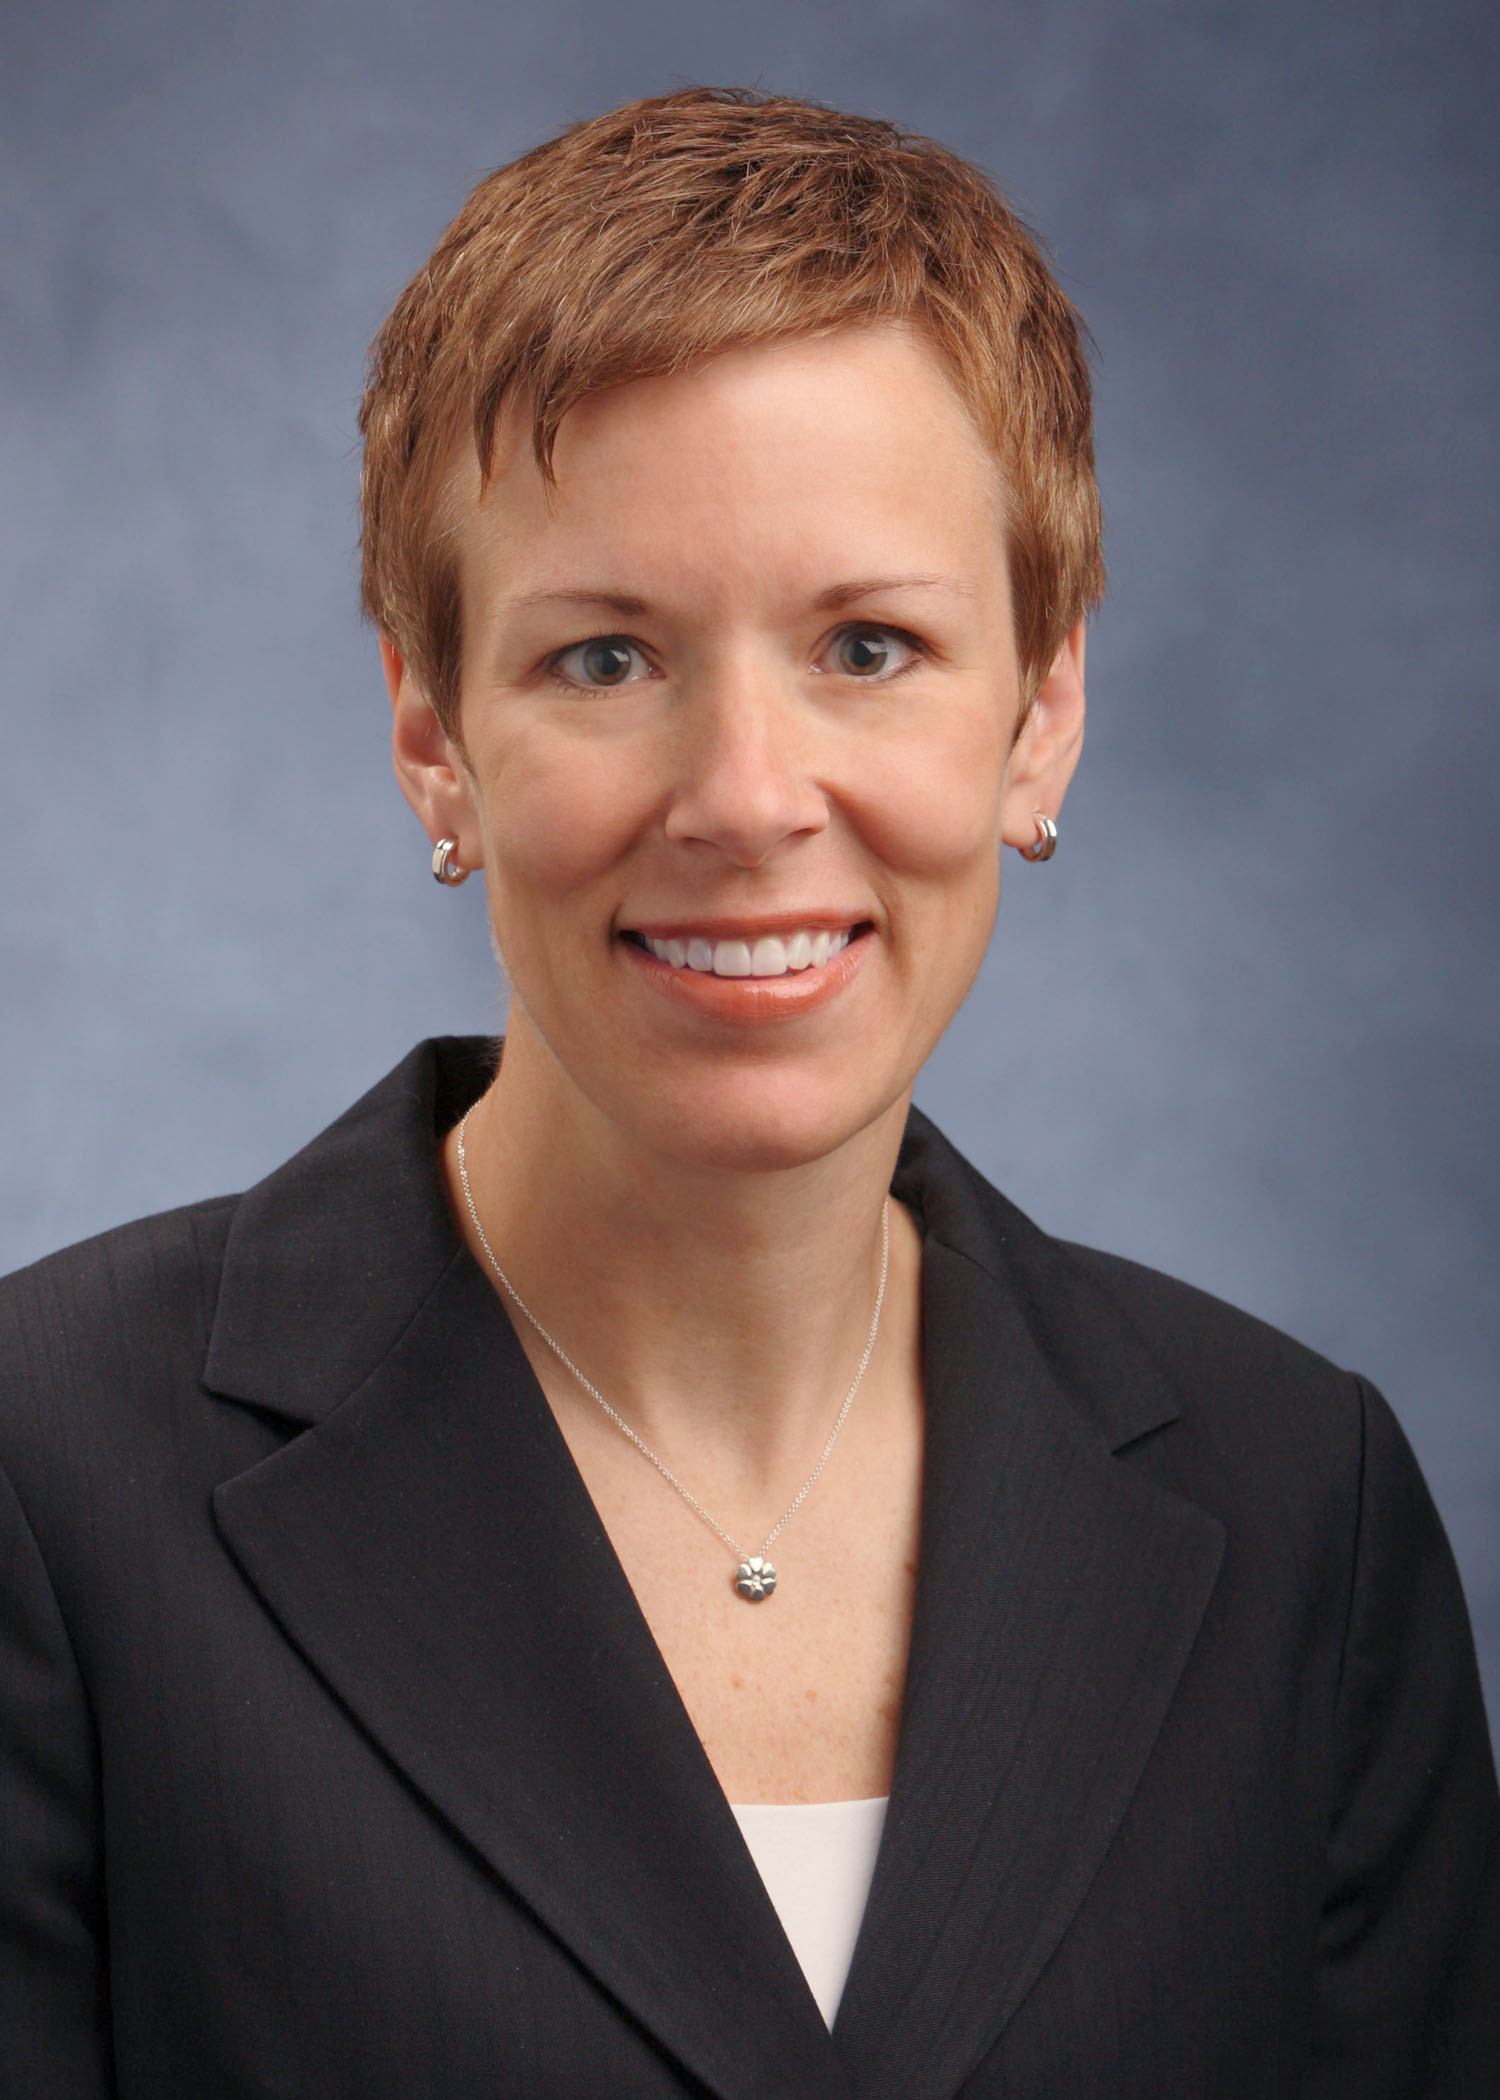 Image of Lisa M. Noller